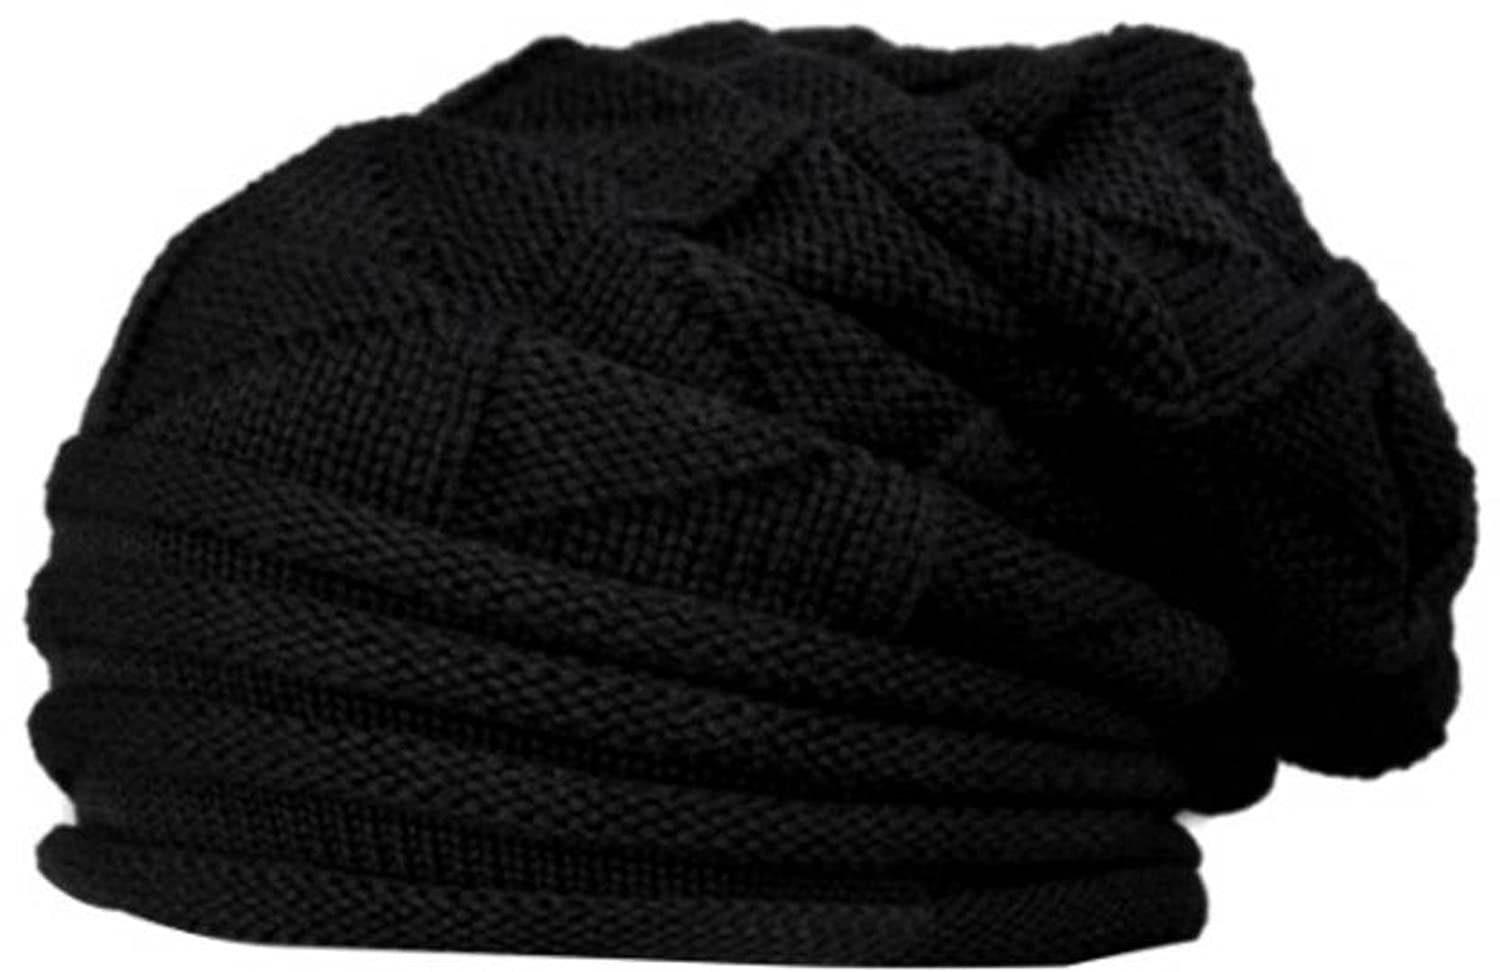 0e5d23dbdde Buy Babji Black Slouchy Woolen Long Beanie Cap for Winter Online at Low  Prices in India - Amazon.in